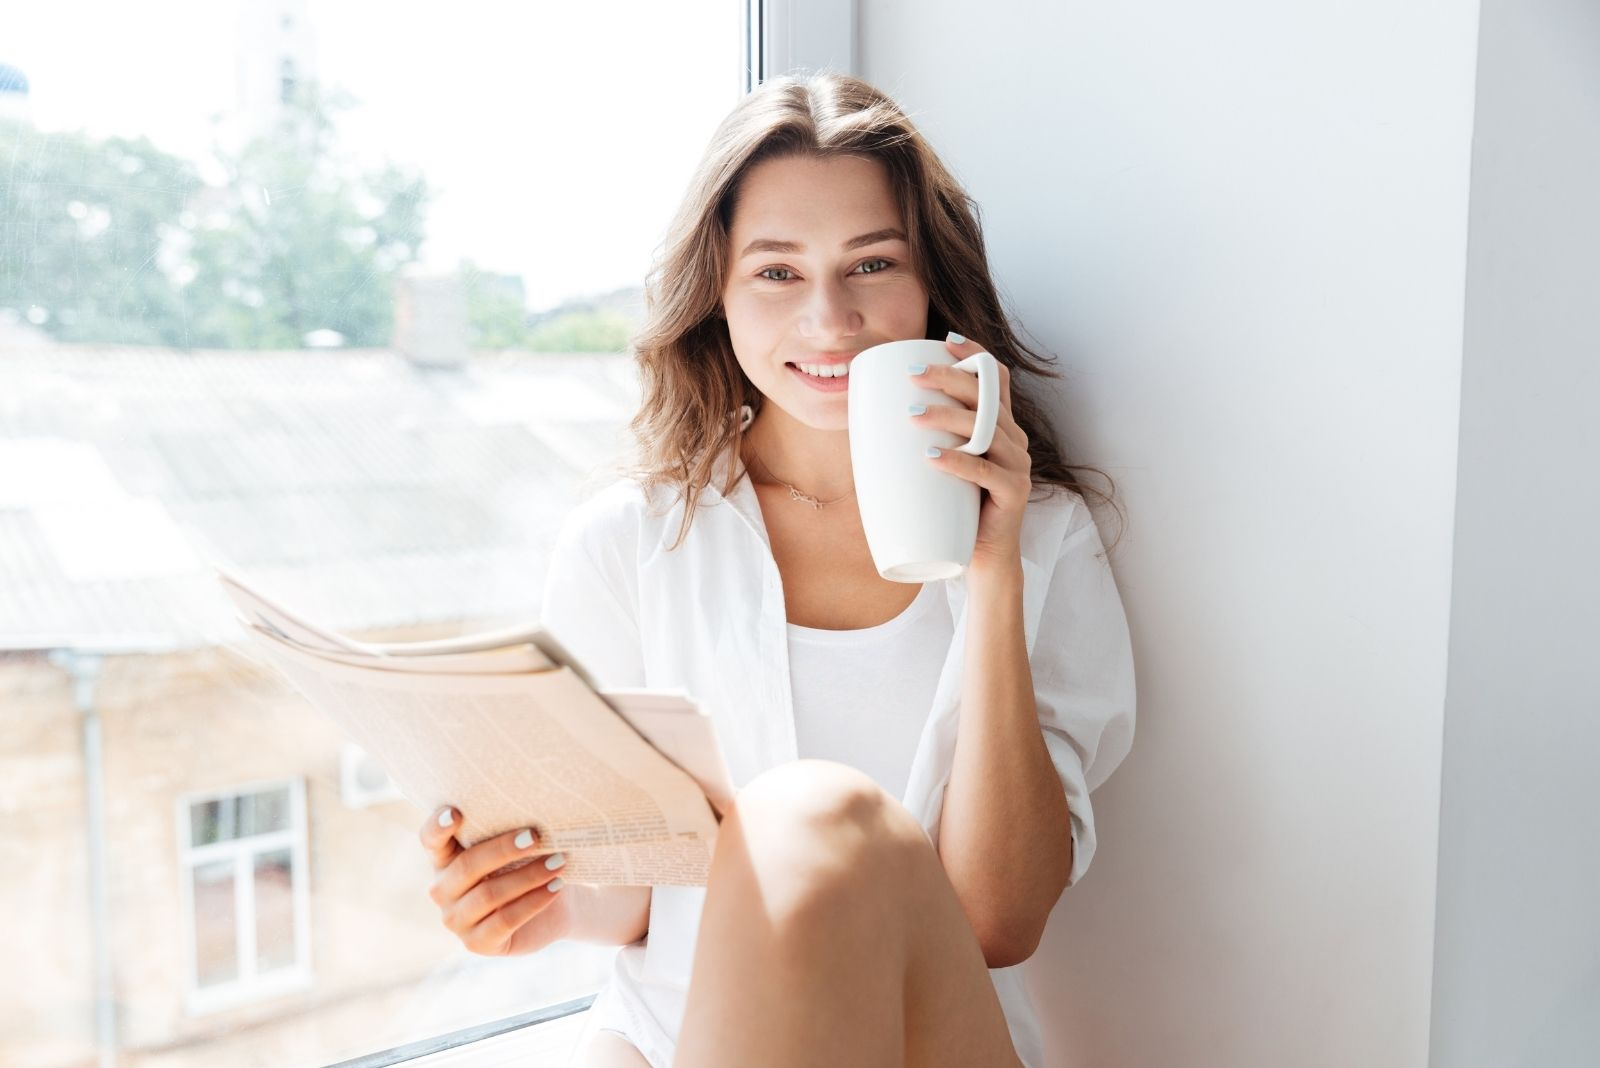 happy woman sitting on the window sill holding newspaper and a mug looking at the camera